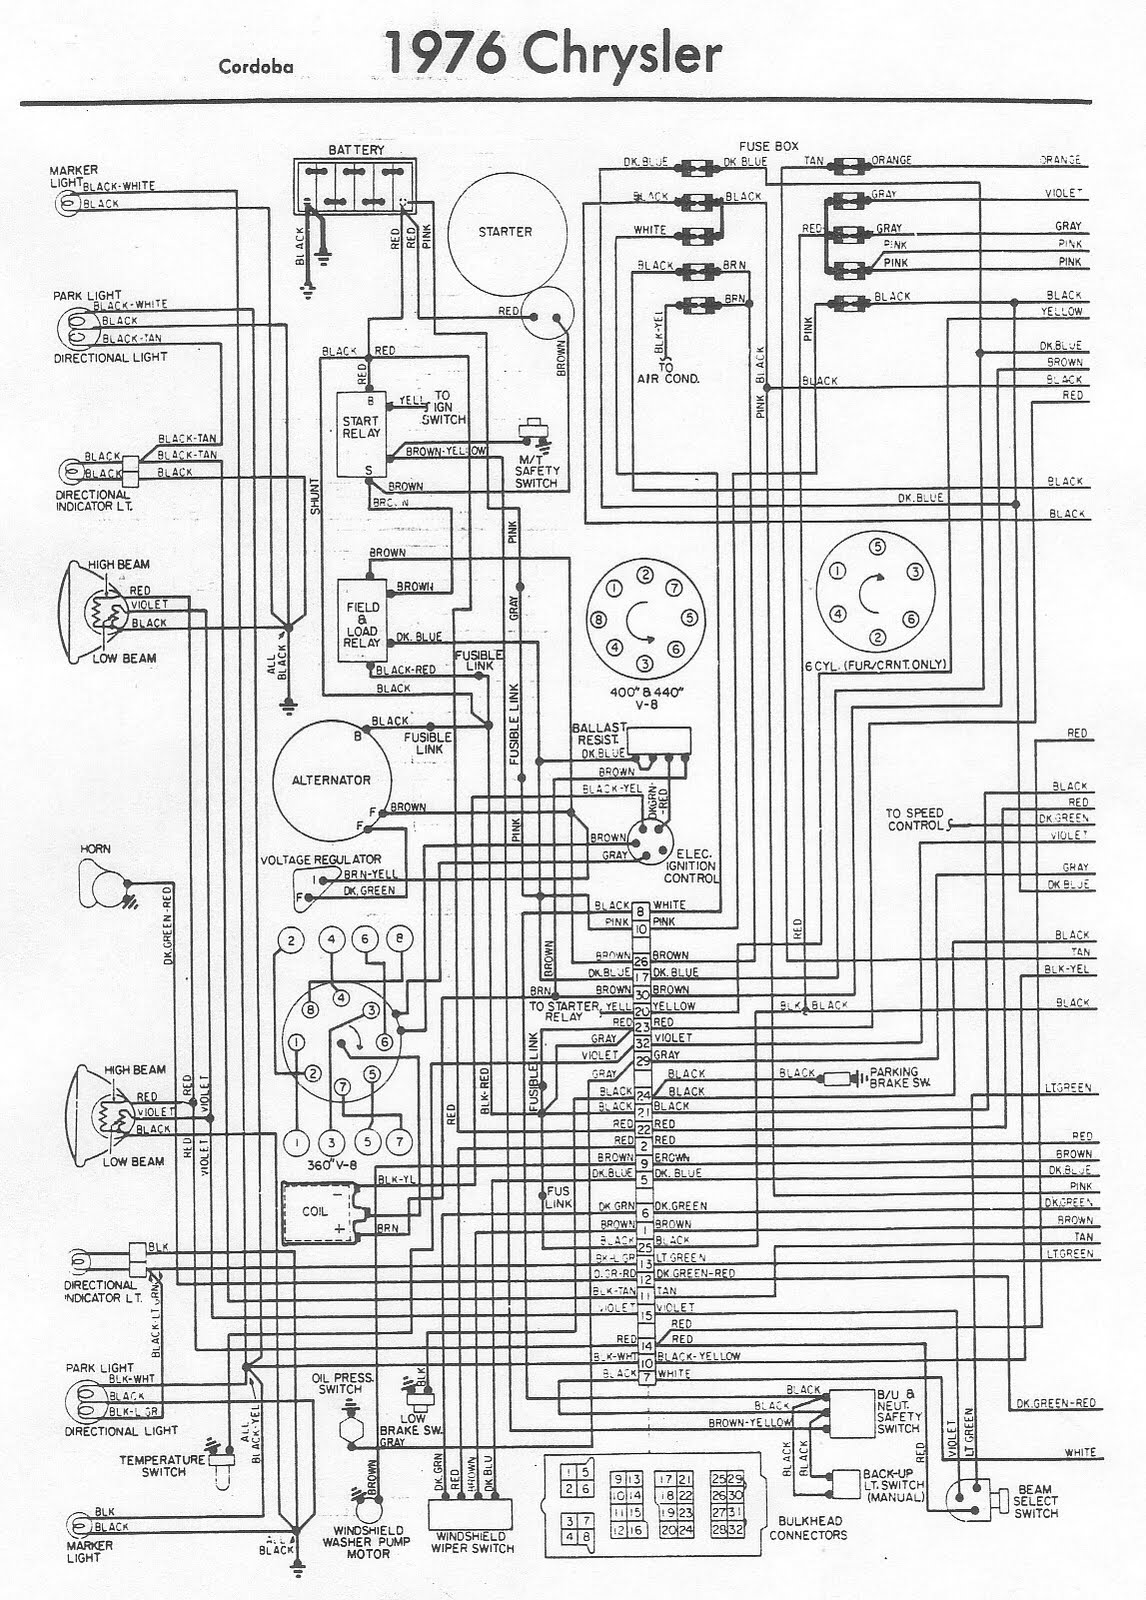 Datsun 280z Moreover Datsun Roadster Wiring Diagram Besides Datsun